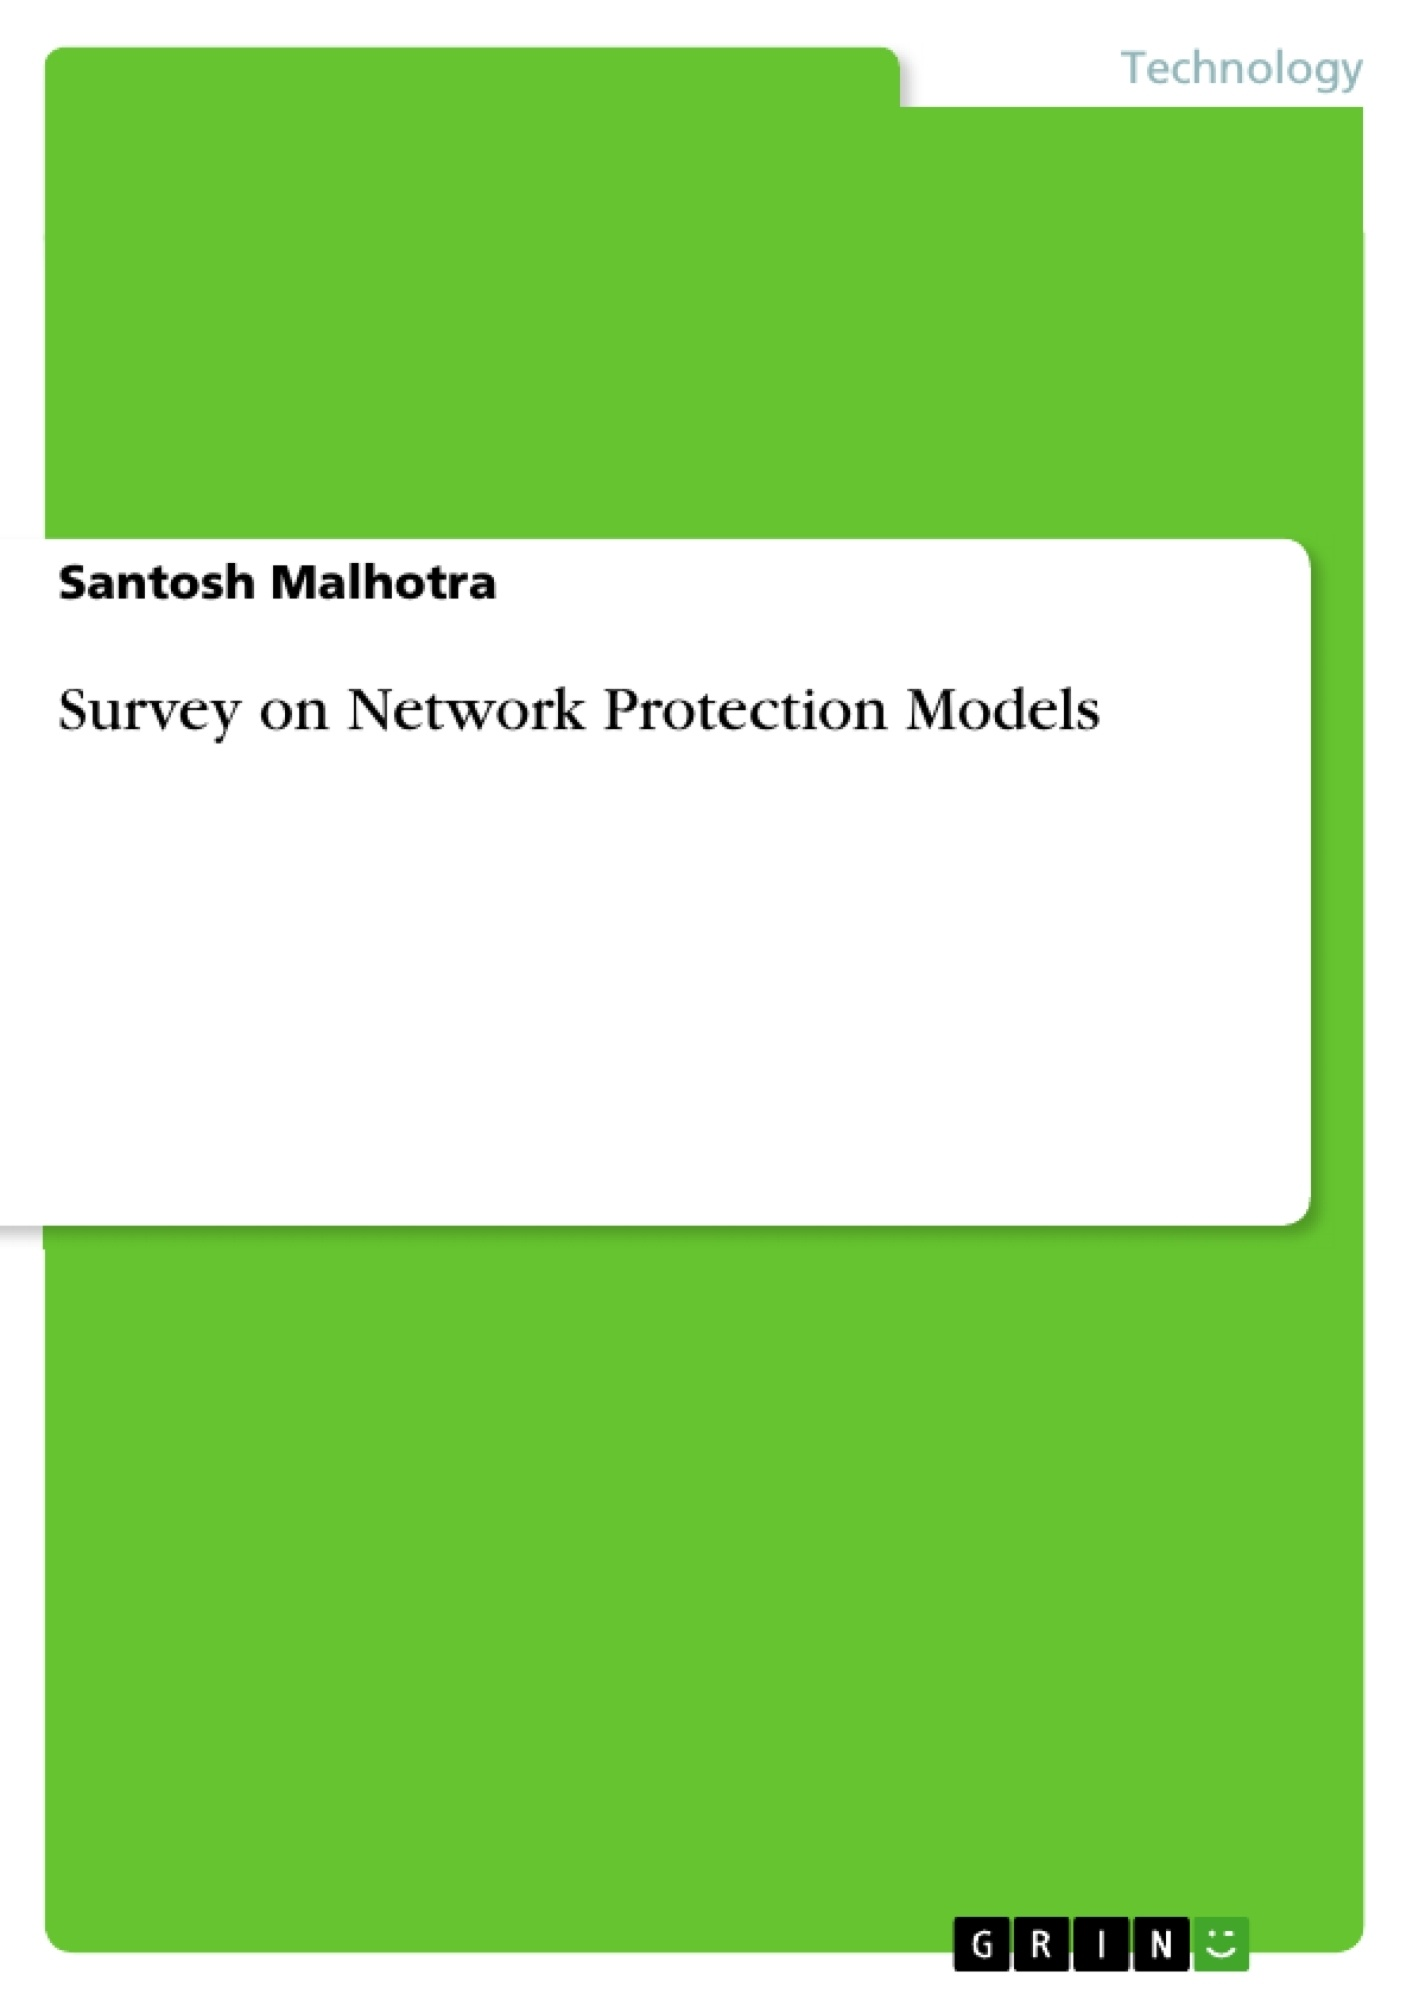 Title: Survey on Network Protection Models